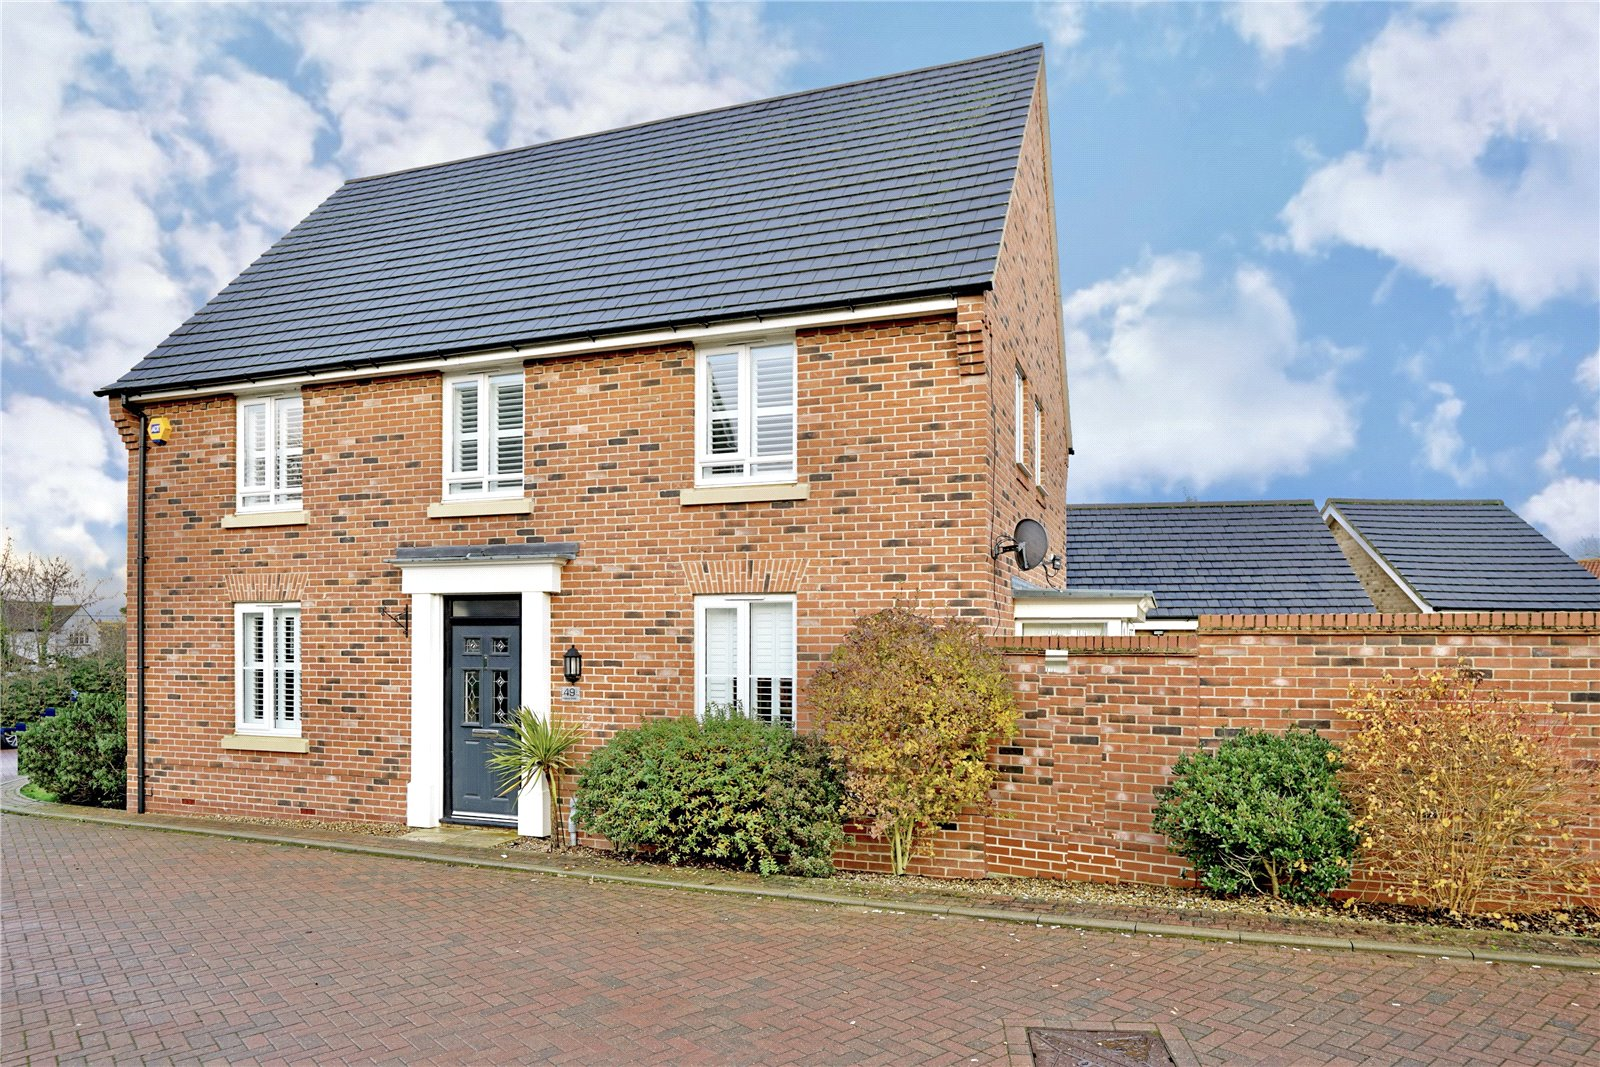 4 bed house for sale in St. Ives, PE27 6TD  - Property Image 1